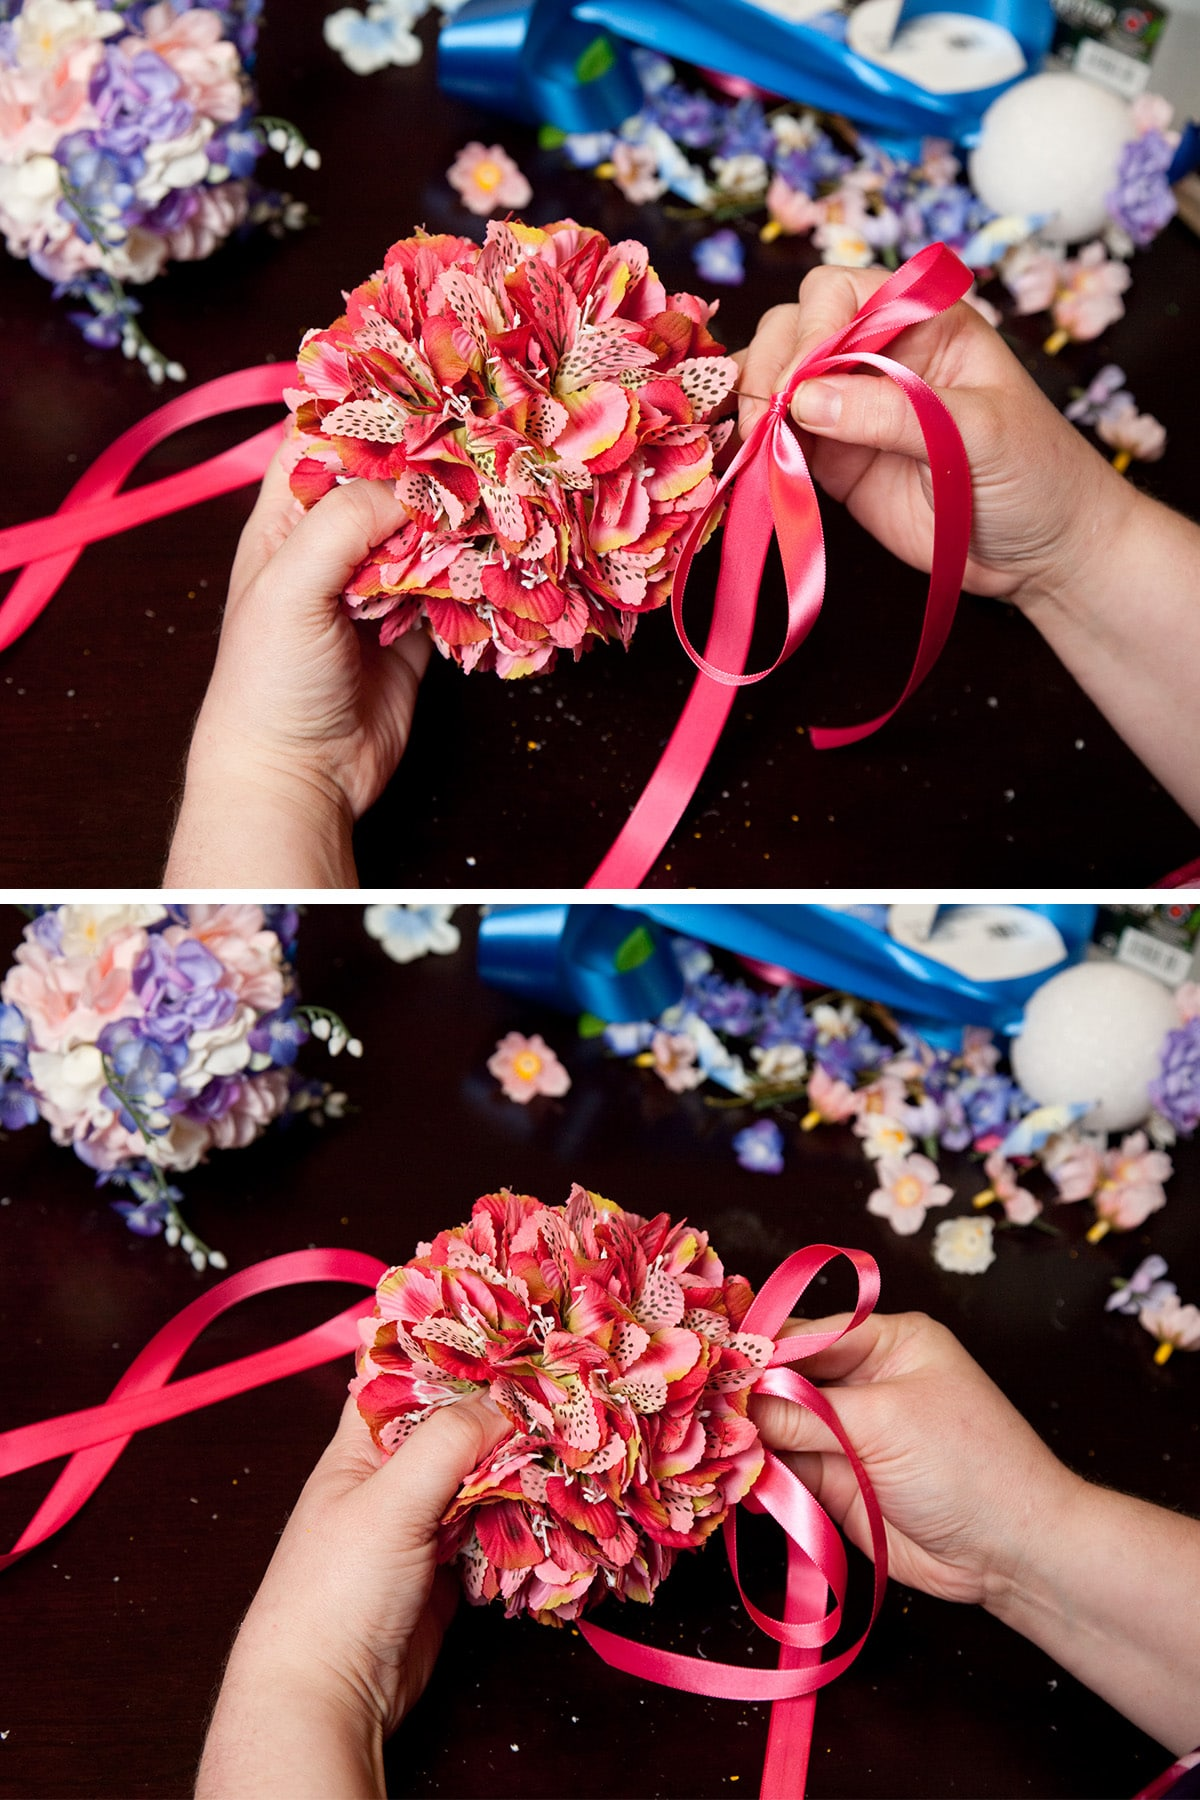 Two hands pin the ribbon to the base of the pomander.